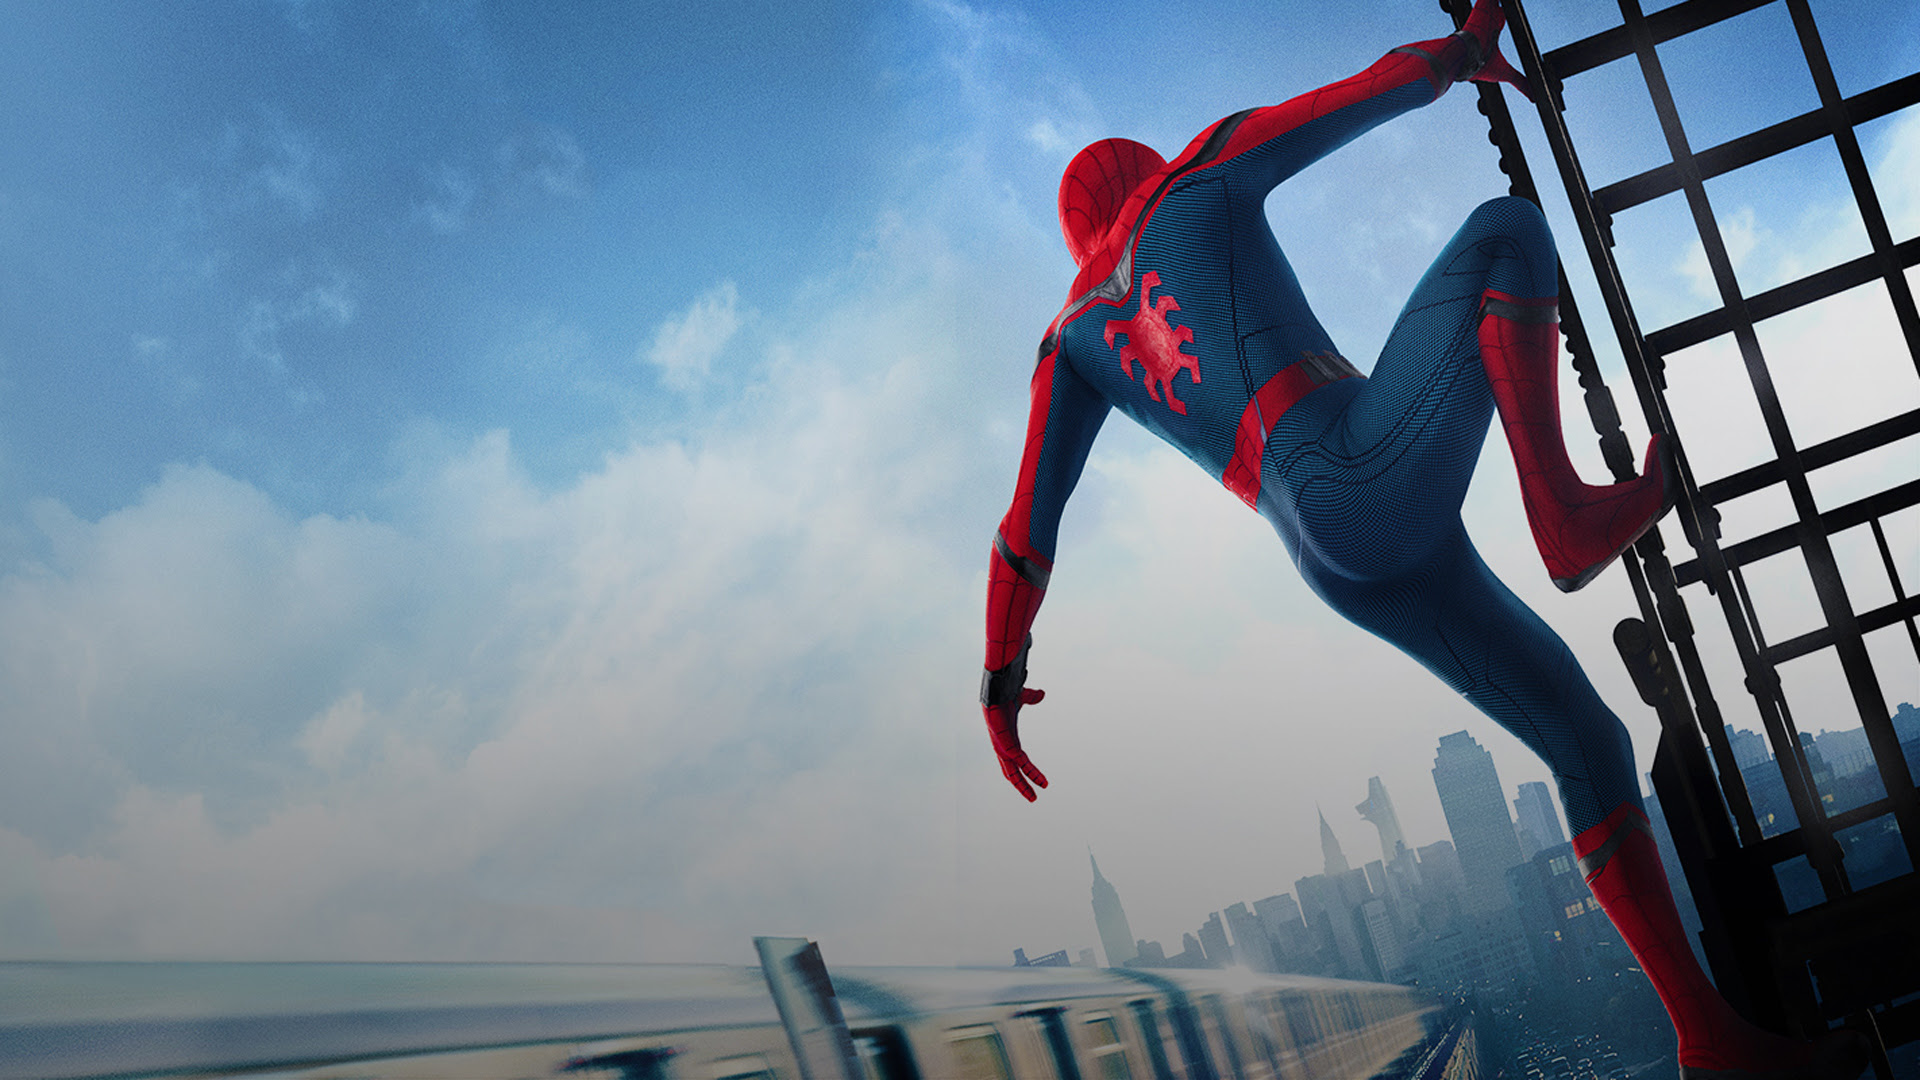 2017 Spiderman Homecoming Movie, HD Movies, 4k Wallpapers, Images, Backgrounds, Photos and Pictures